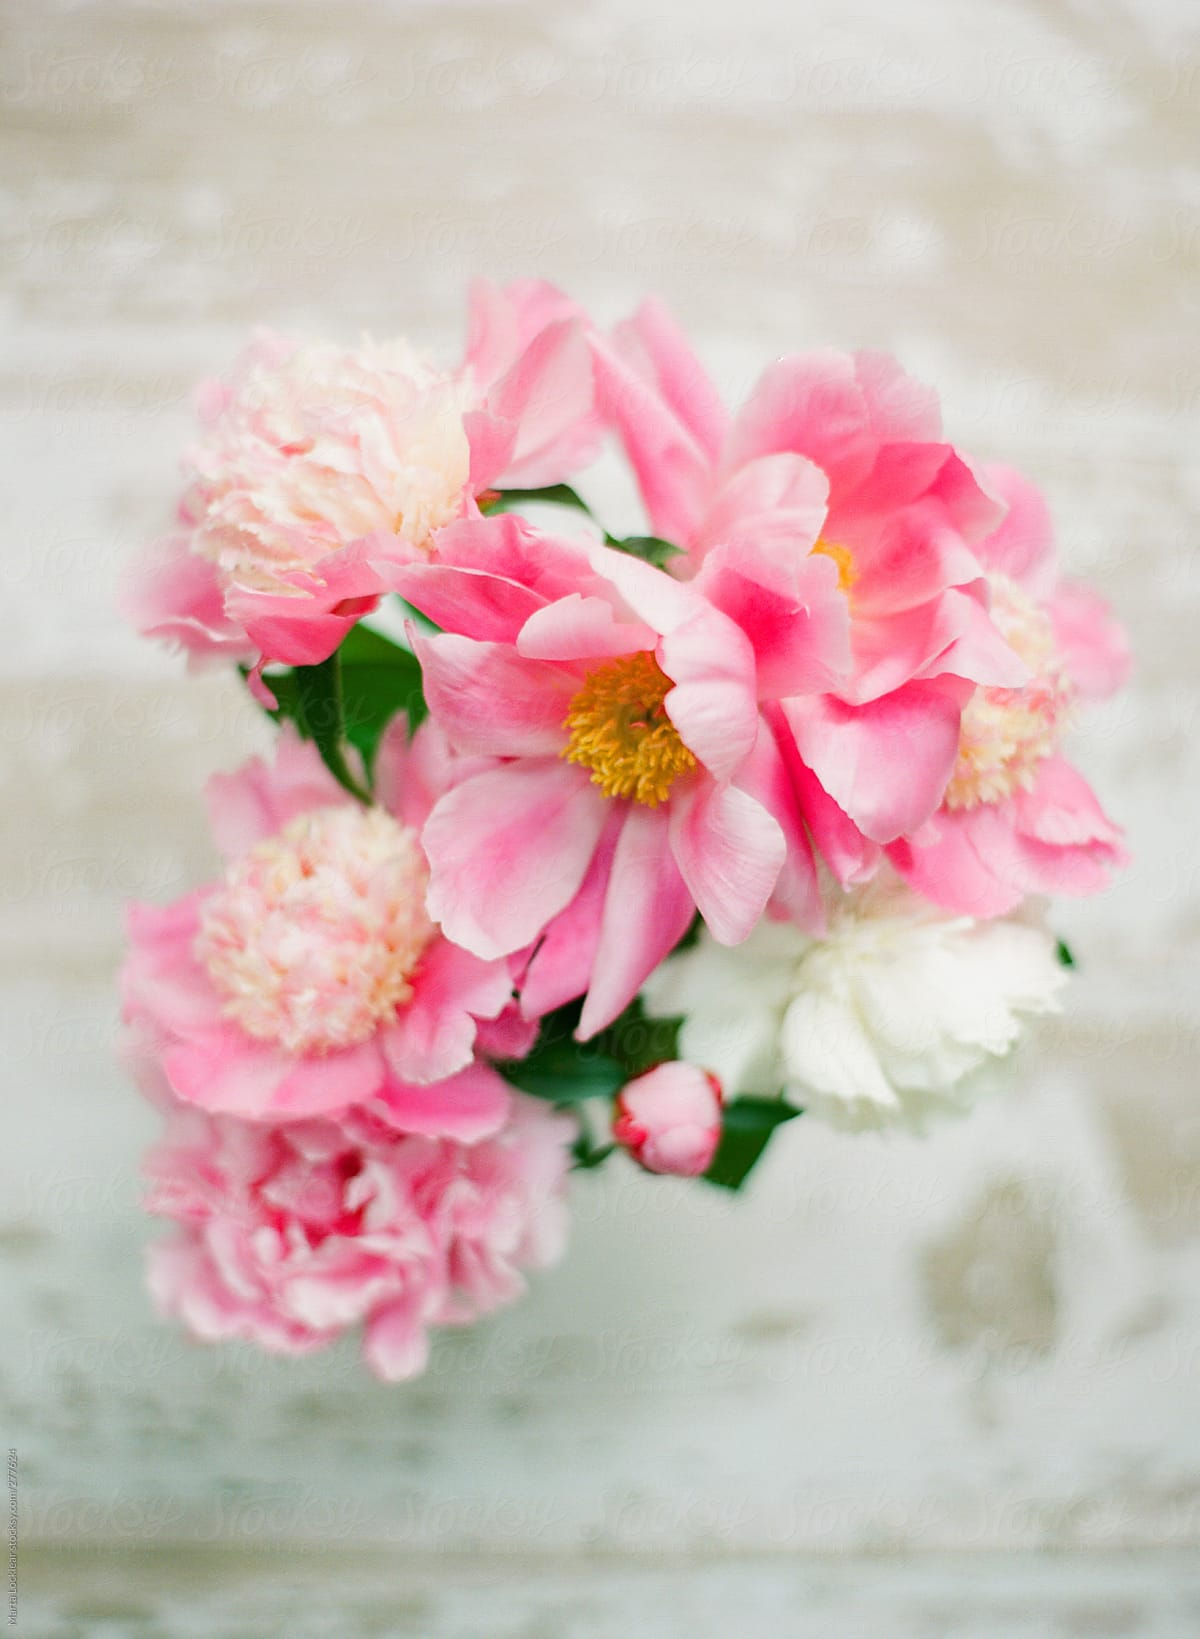 Portrait Of A Bouquet Of Peony Flowers From A Home Garden Stocksy